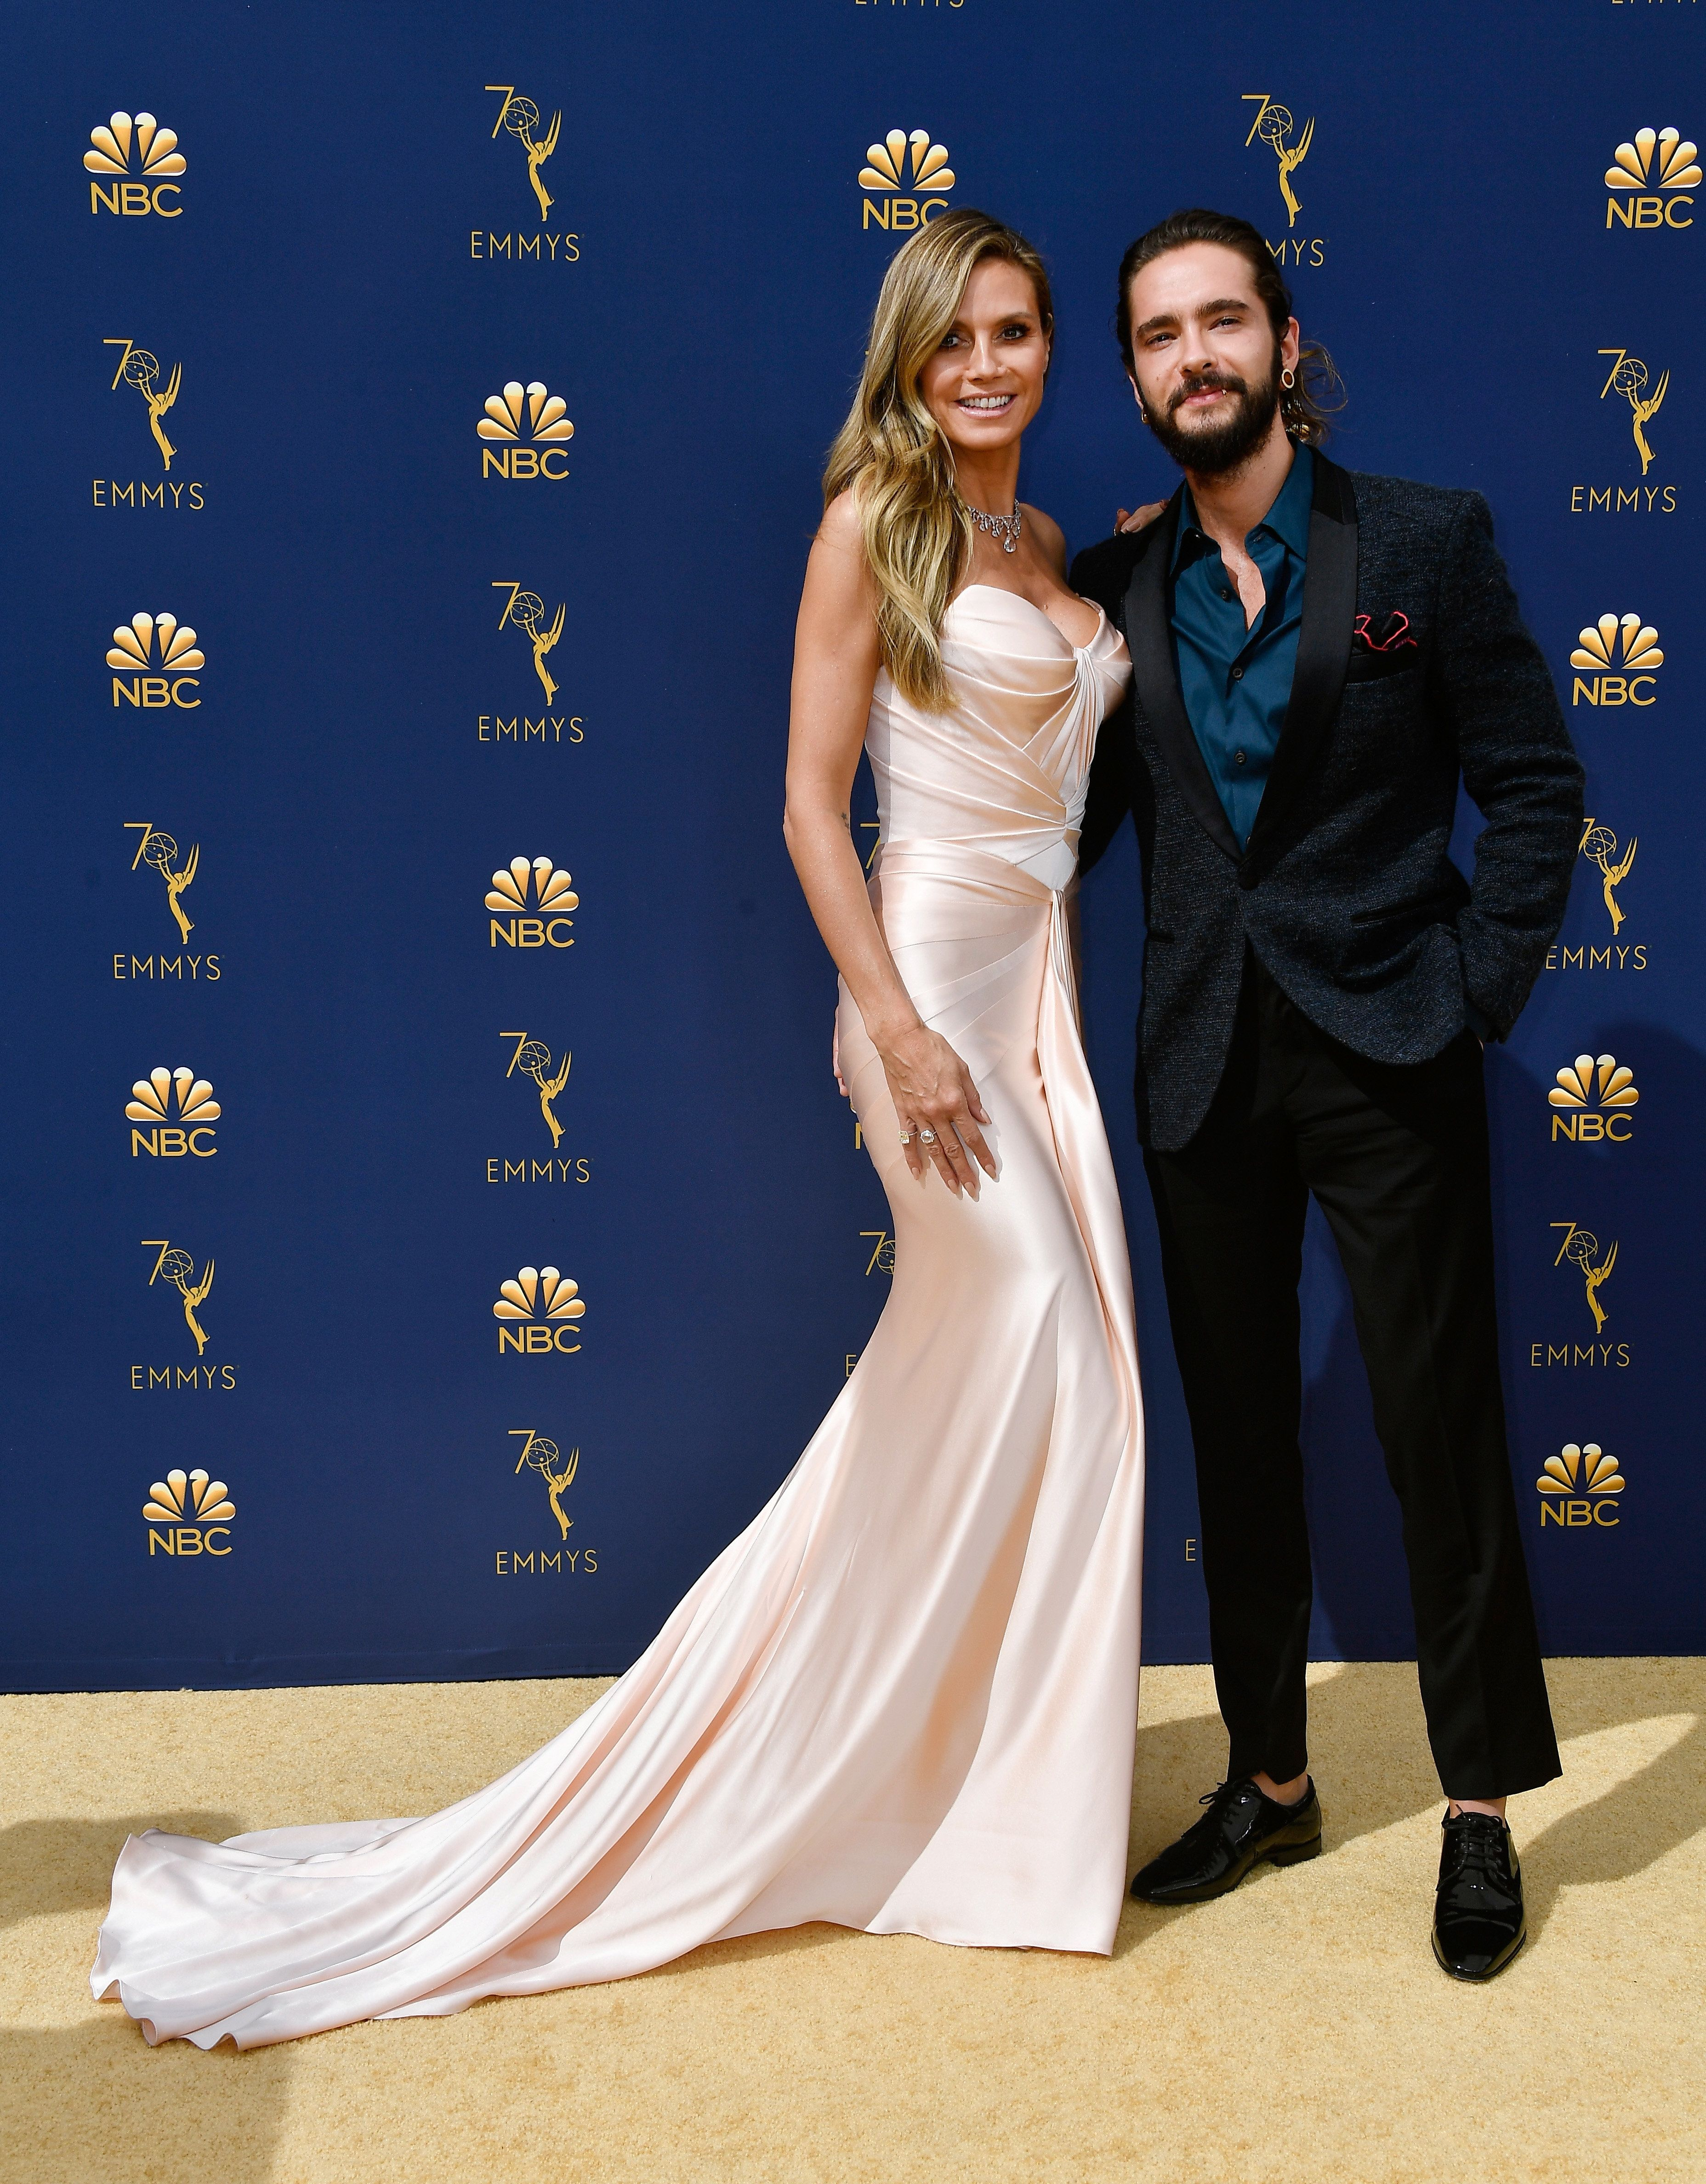 LOS ANGELES, CA - SEPTEMBER 17: Heidi Klum (L) and Tom Kaulitz attend the 70th Emmy Awards at Microsoft Theater on September